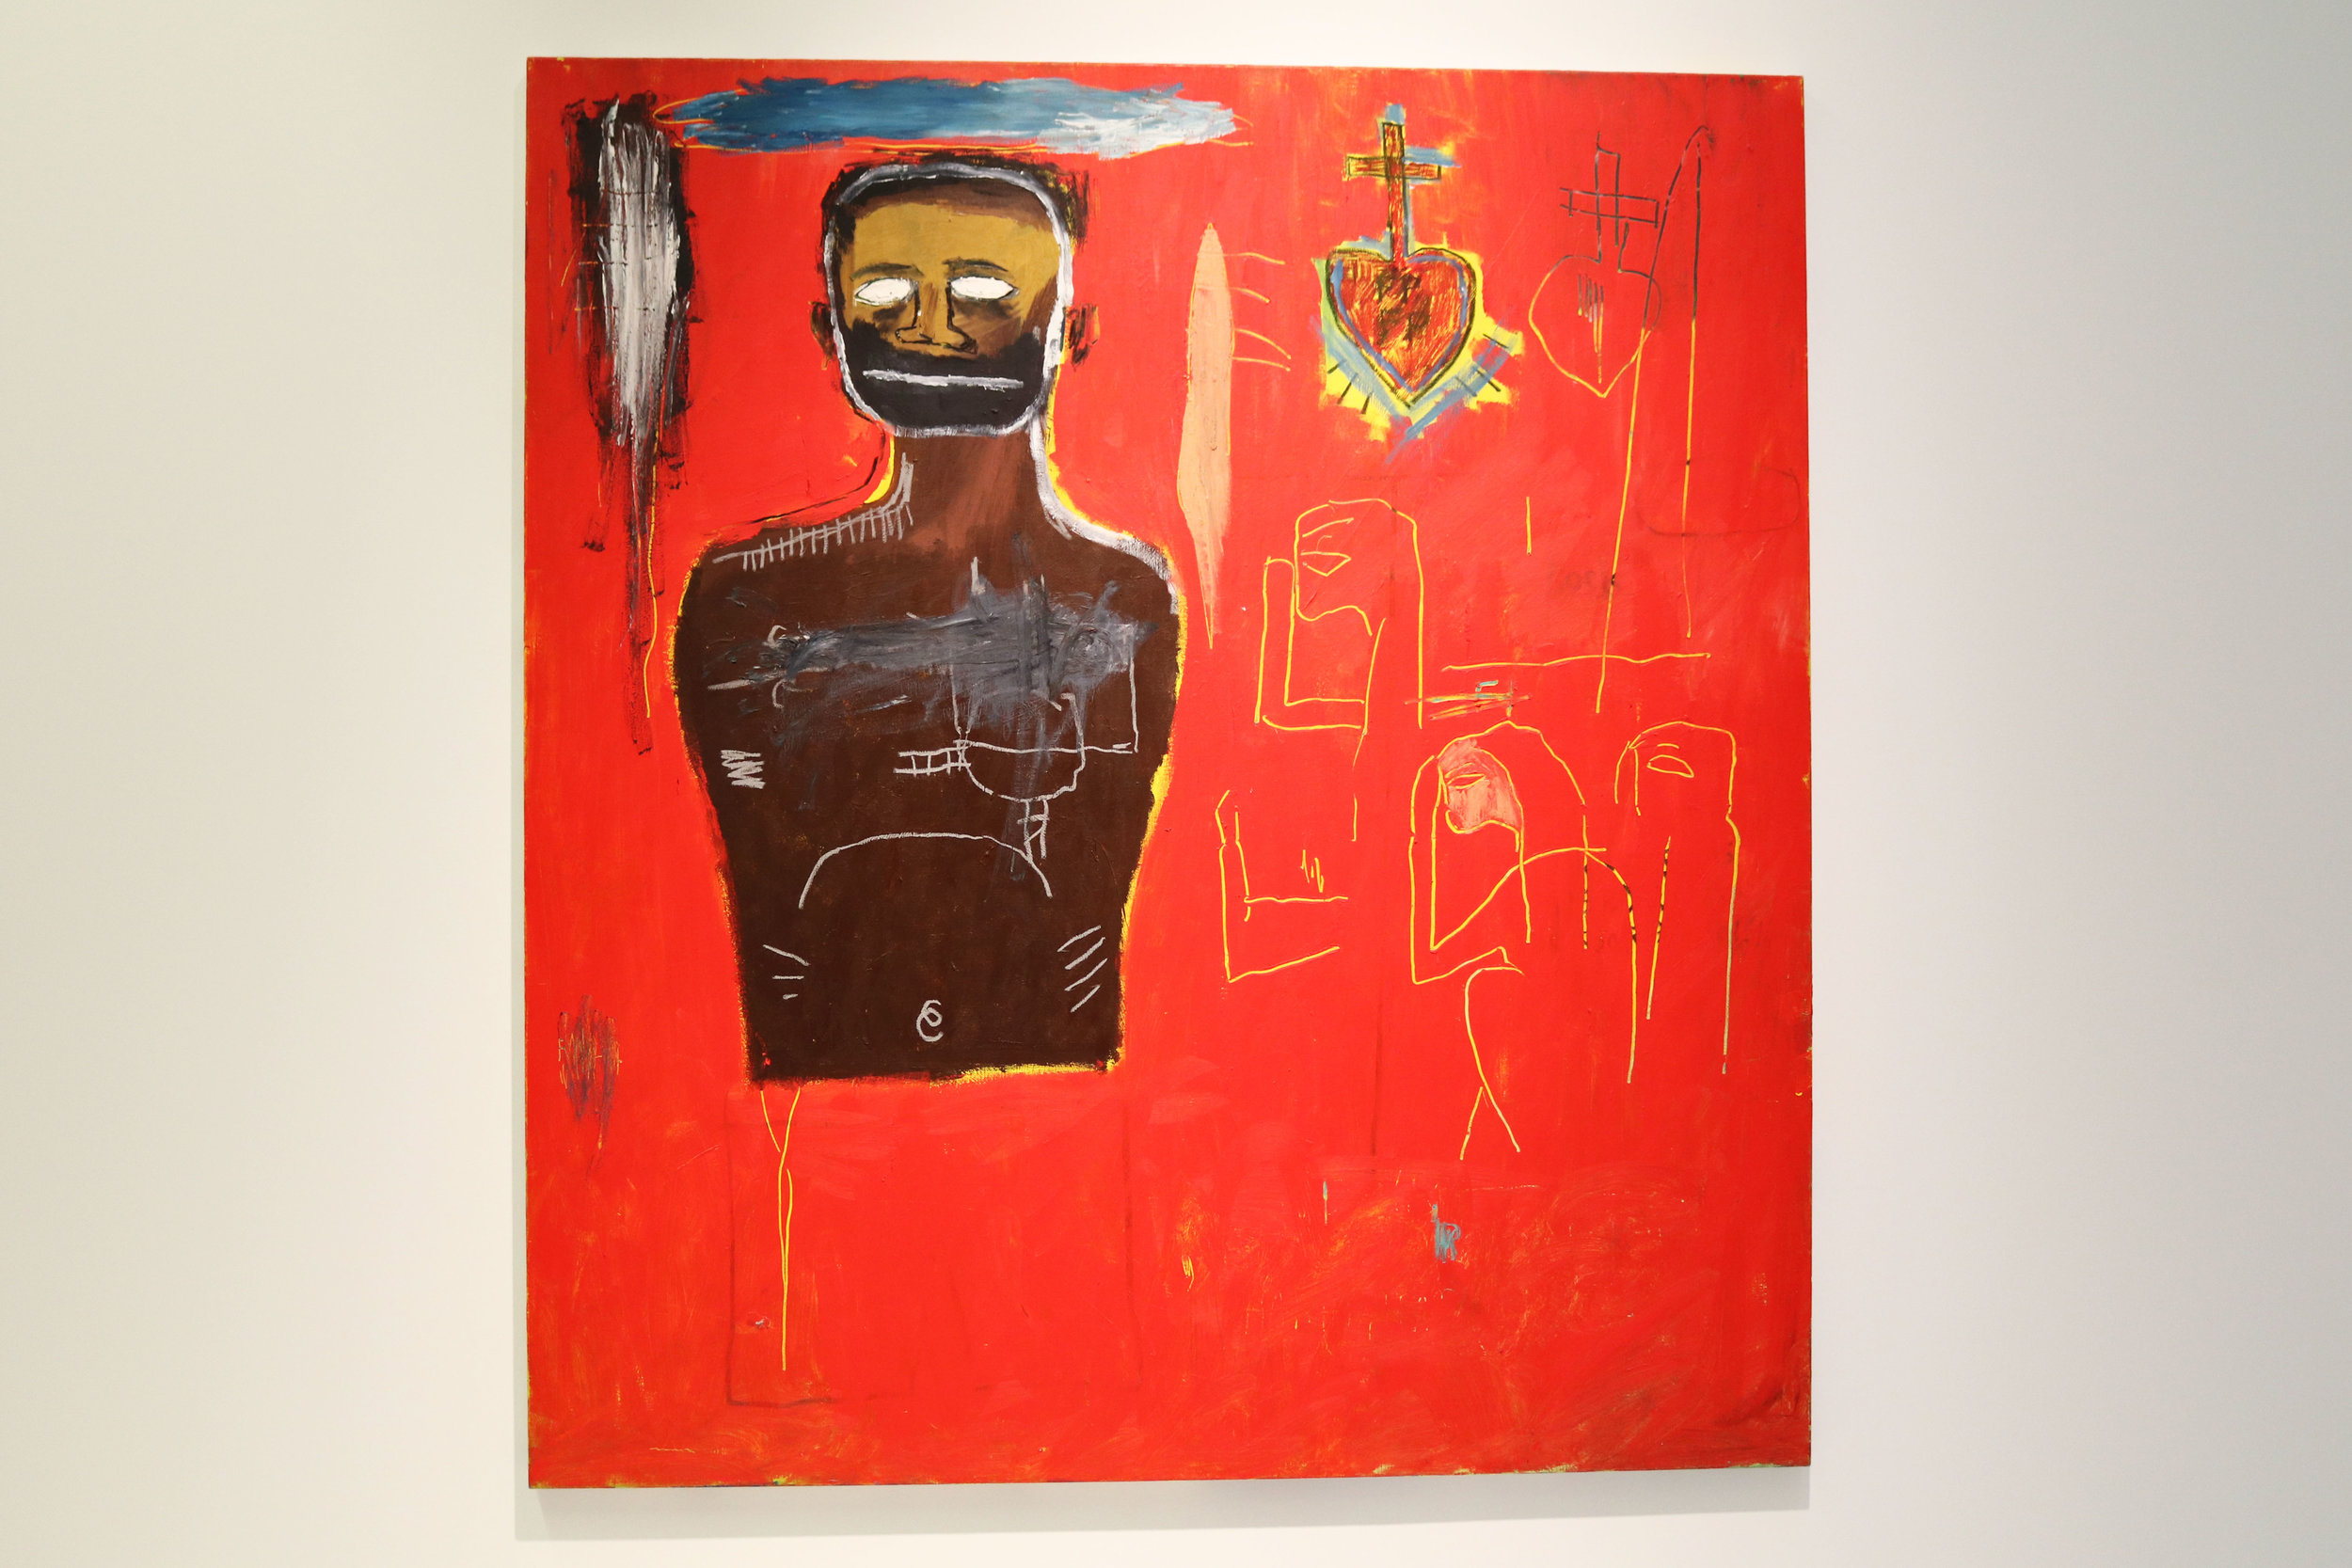 Jean-Michel Basquiat at the Denver Museum of Contemporary Art in the Basquiat Before Basquiat: East 12th Street, 1979-1980 exhibition.